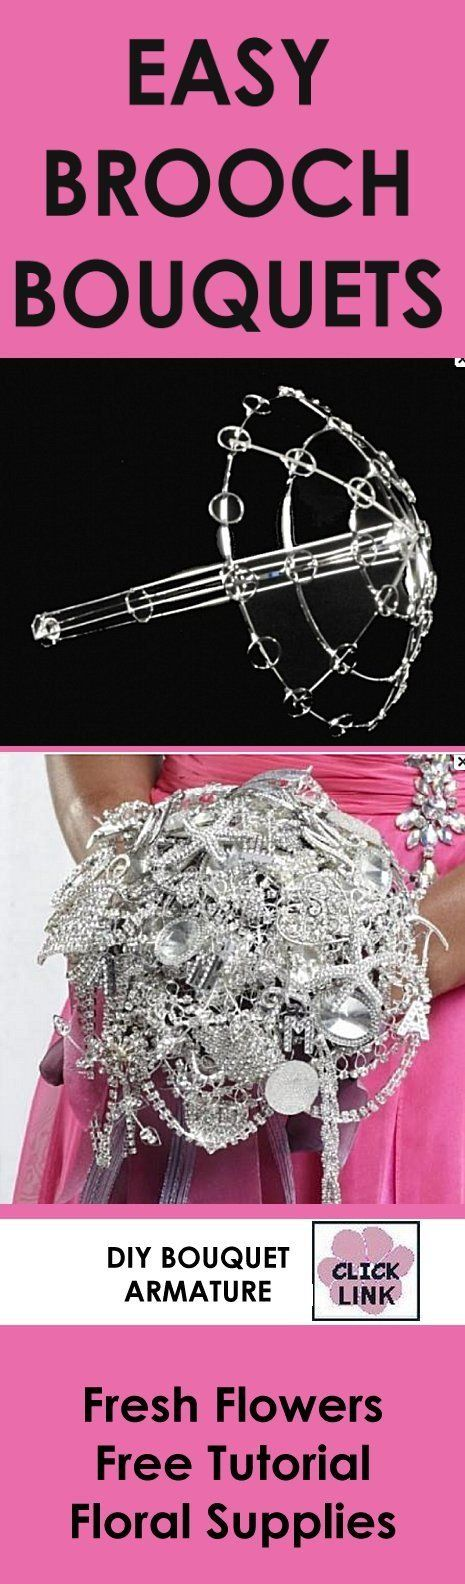 Crystal Bridal Bouquet Holder - Step by Step Tutorial  - Lightweight armature that cuts down the heavy weight of brooch bouquets!  Check it out - free tutorial!  Learn how to make bridal bouquets, corsages, boutonnieres, reception table centerpieces and church decorations.  Buy wholesale fresh flowers and discount florist supplies.